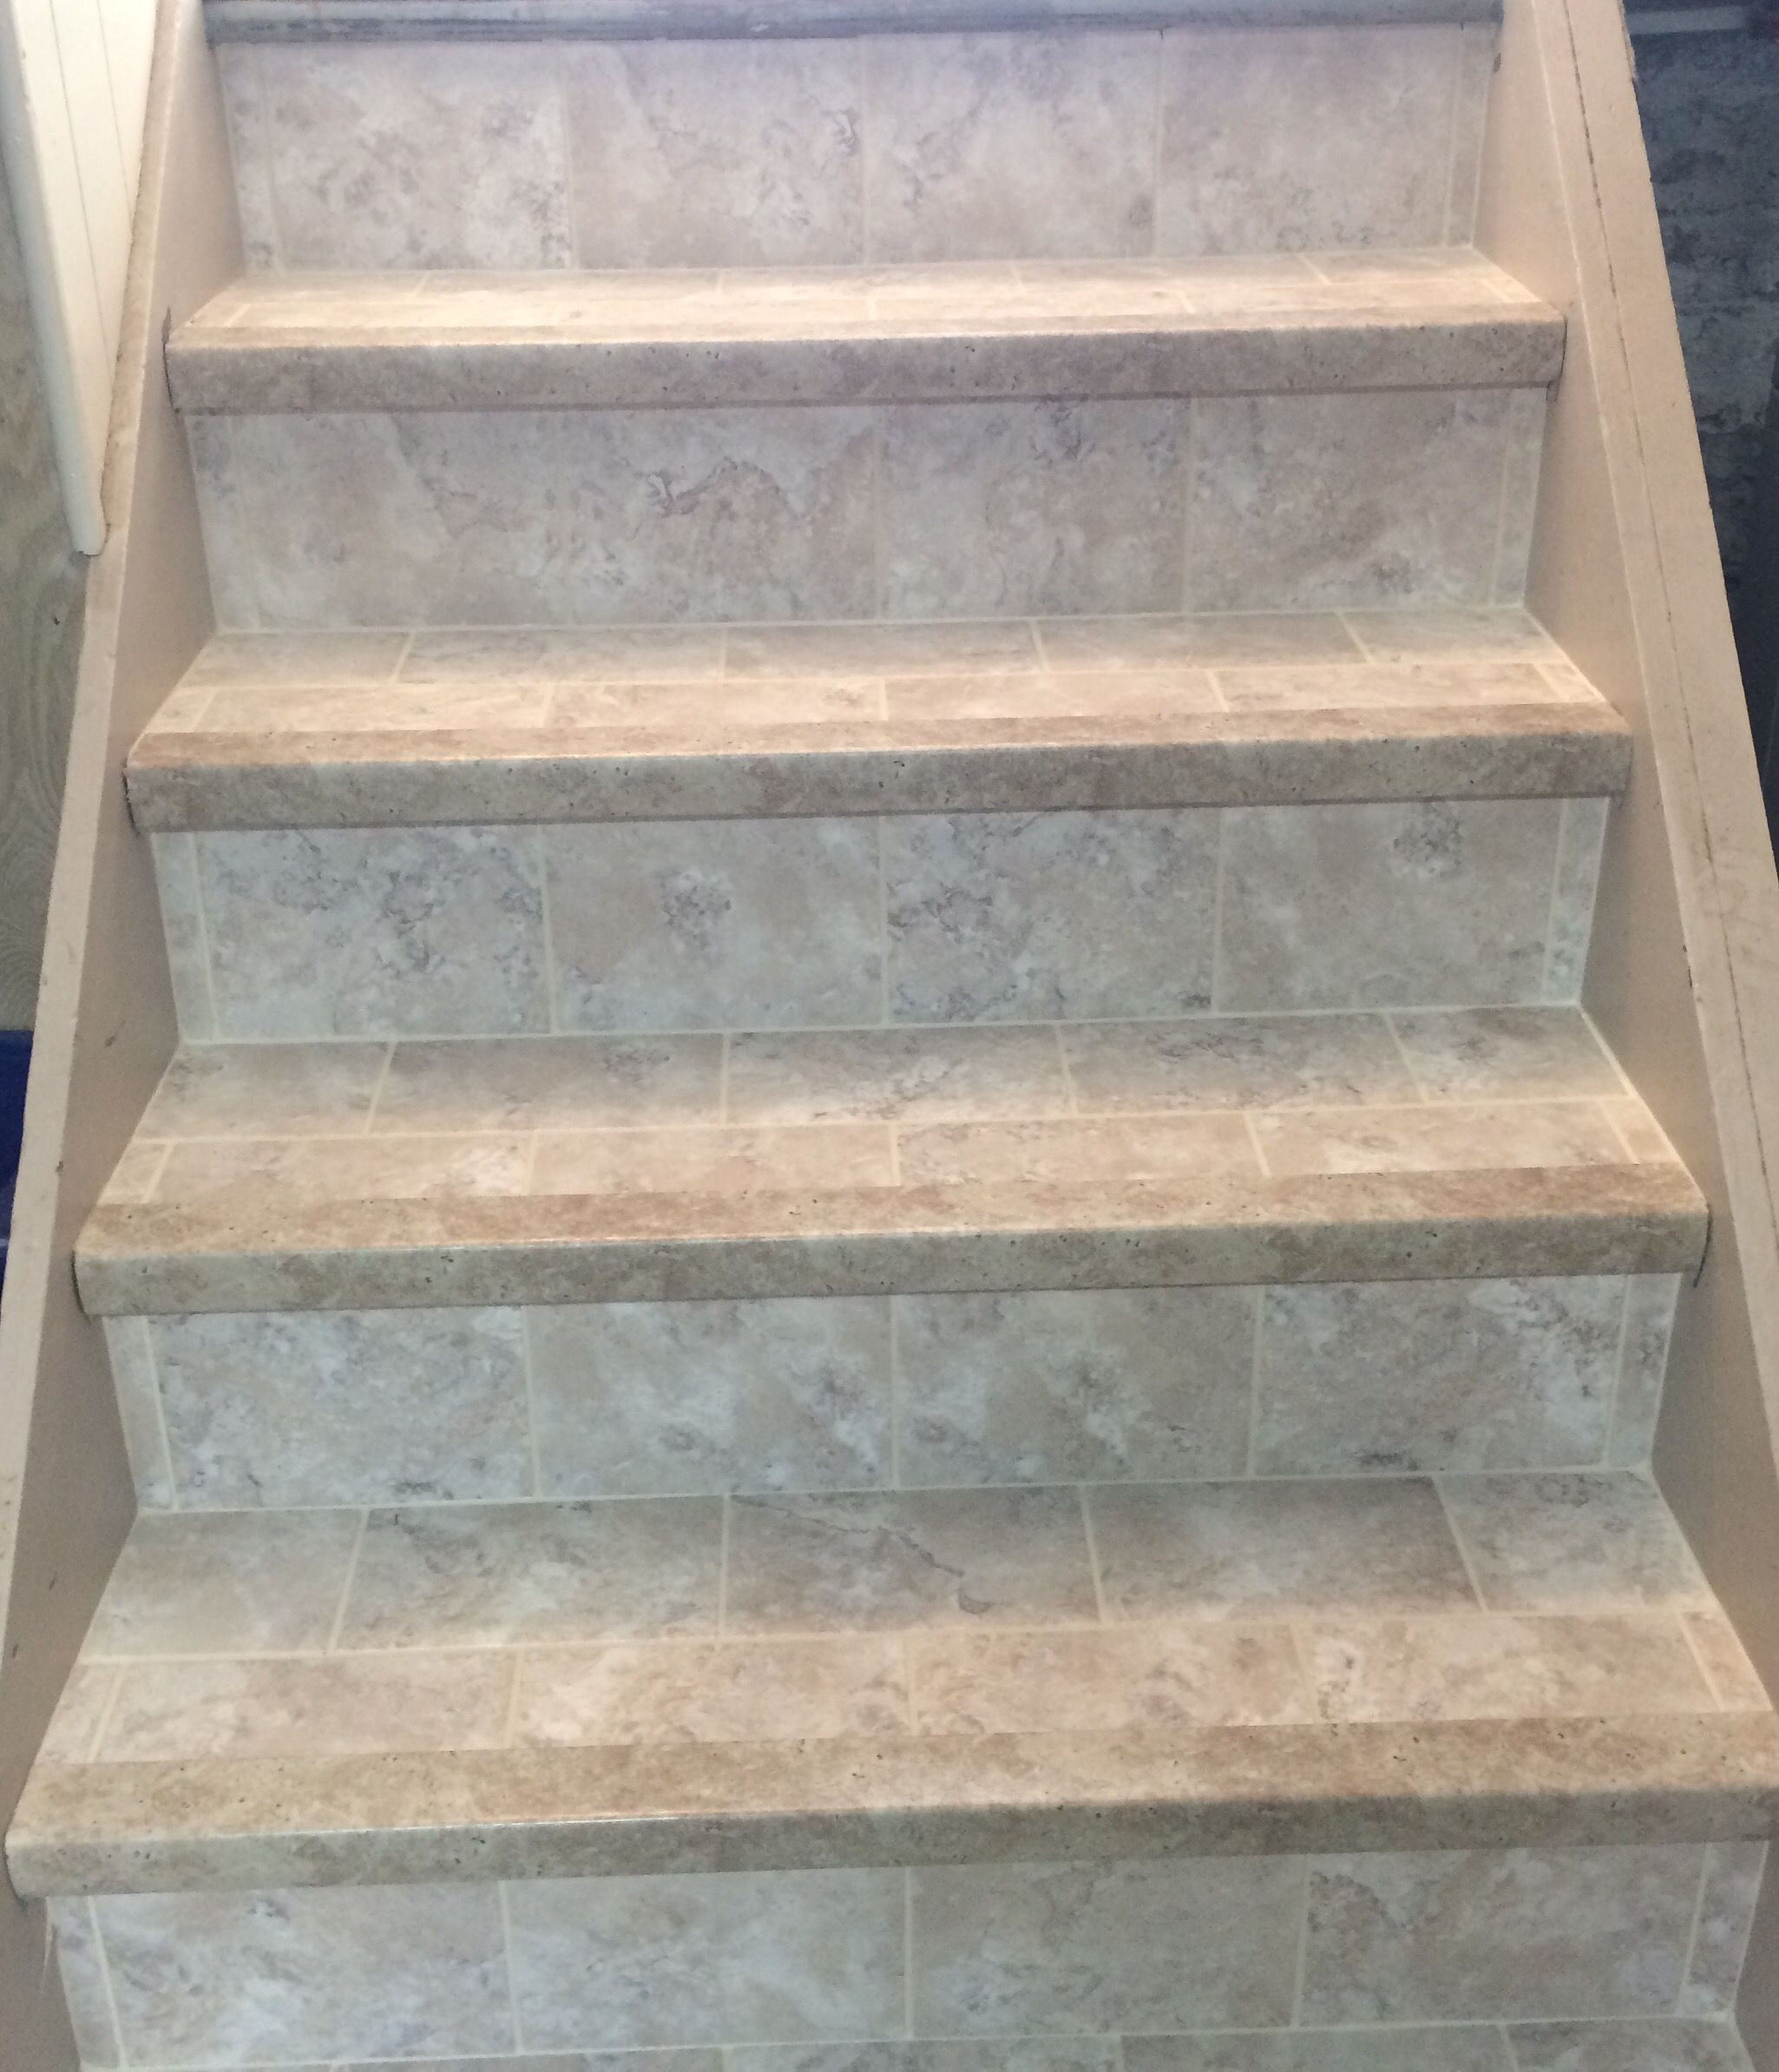 Luxury Vinyl Tile On This Staircase Using Armstrong Alterna!